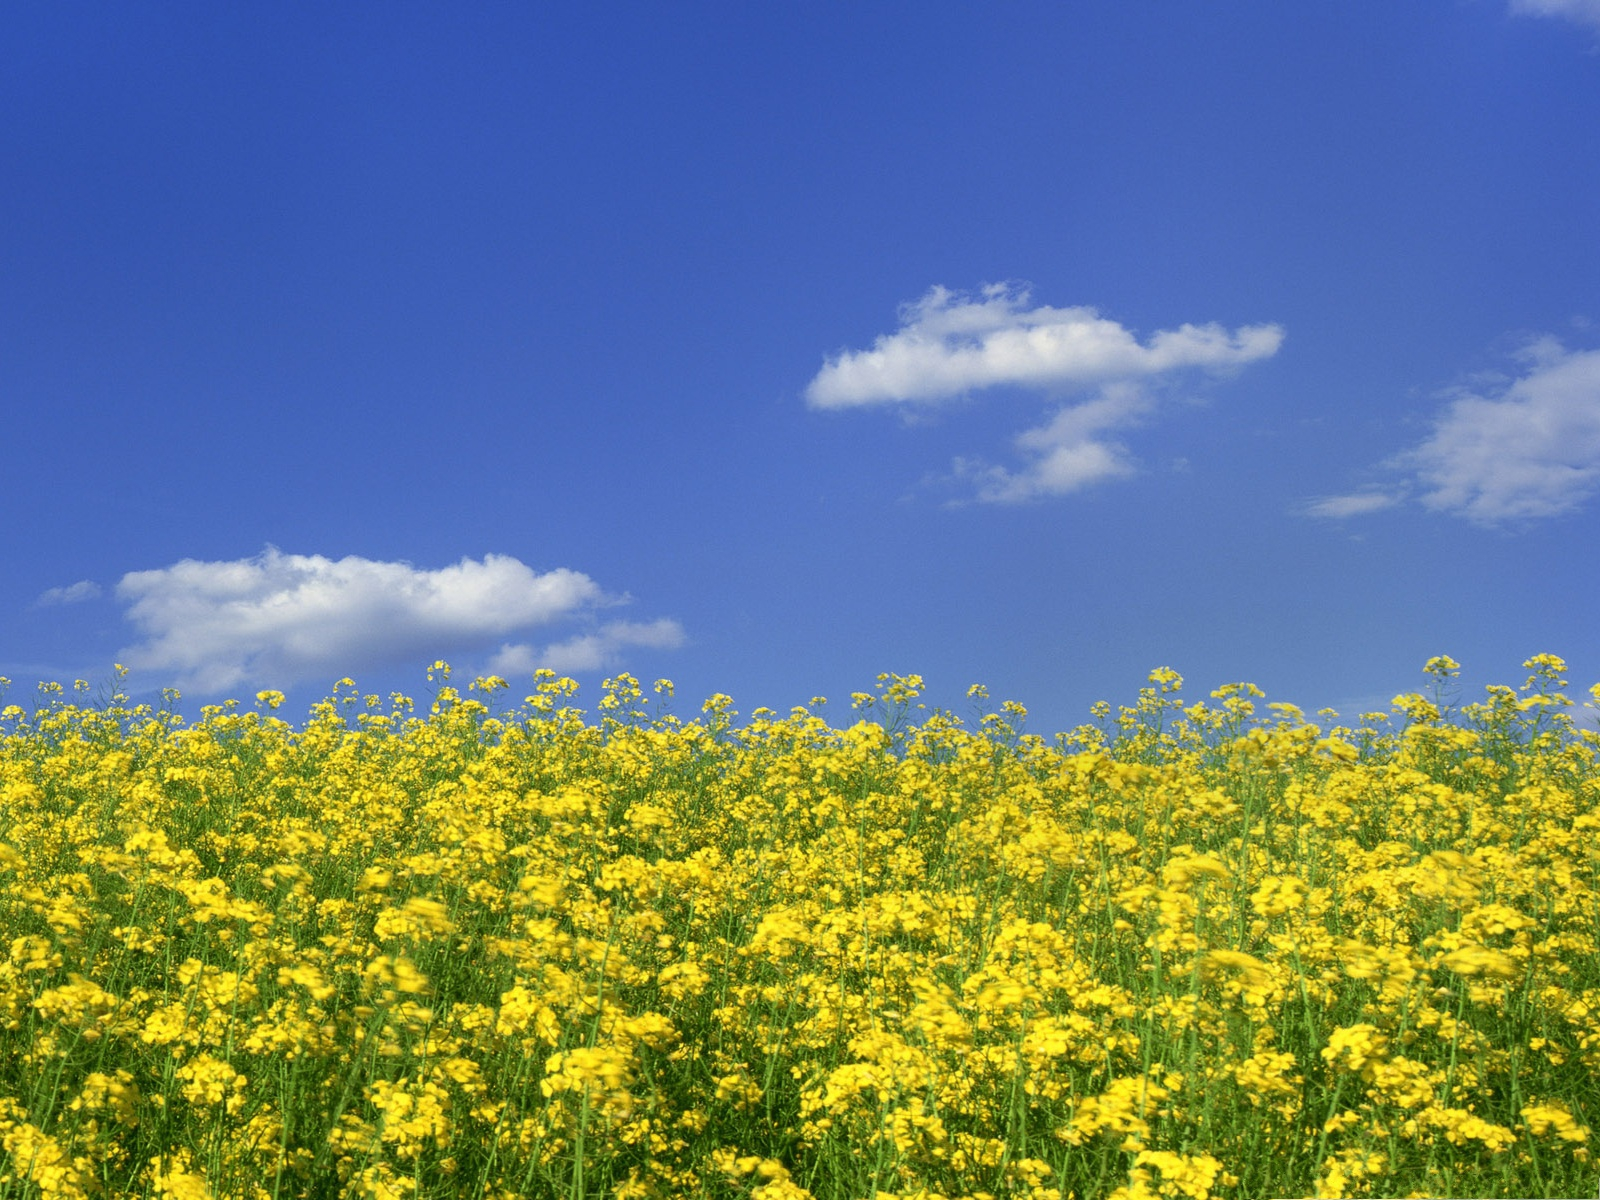 click to free download the wallpaper--Mustard Flower Field, Yellow Flower Field, the Blue and Cloudless Sky 1600X1200 free wallpaper download